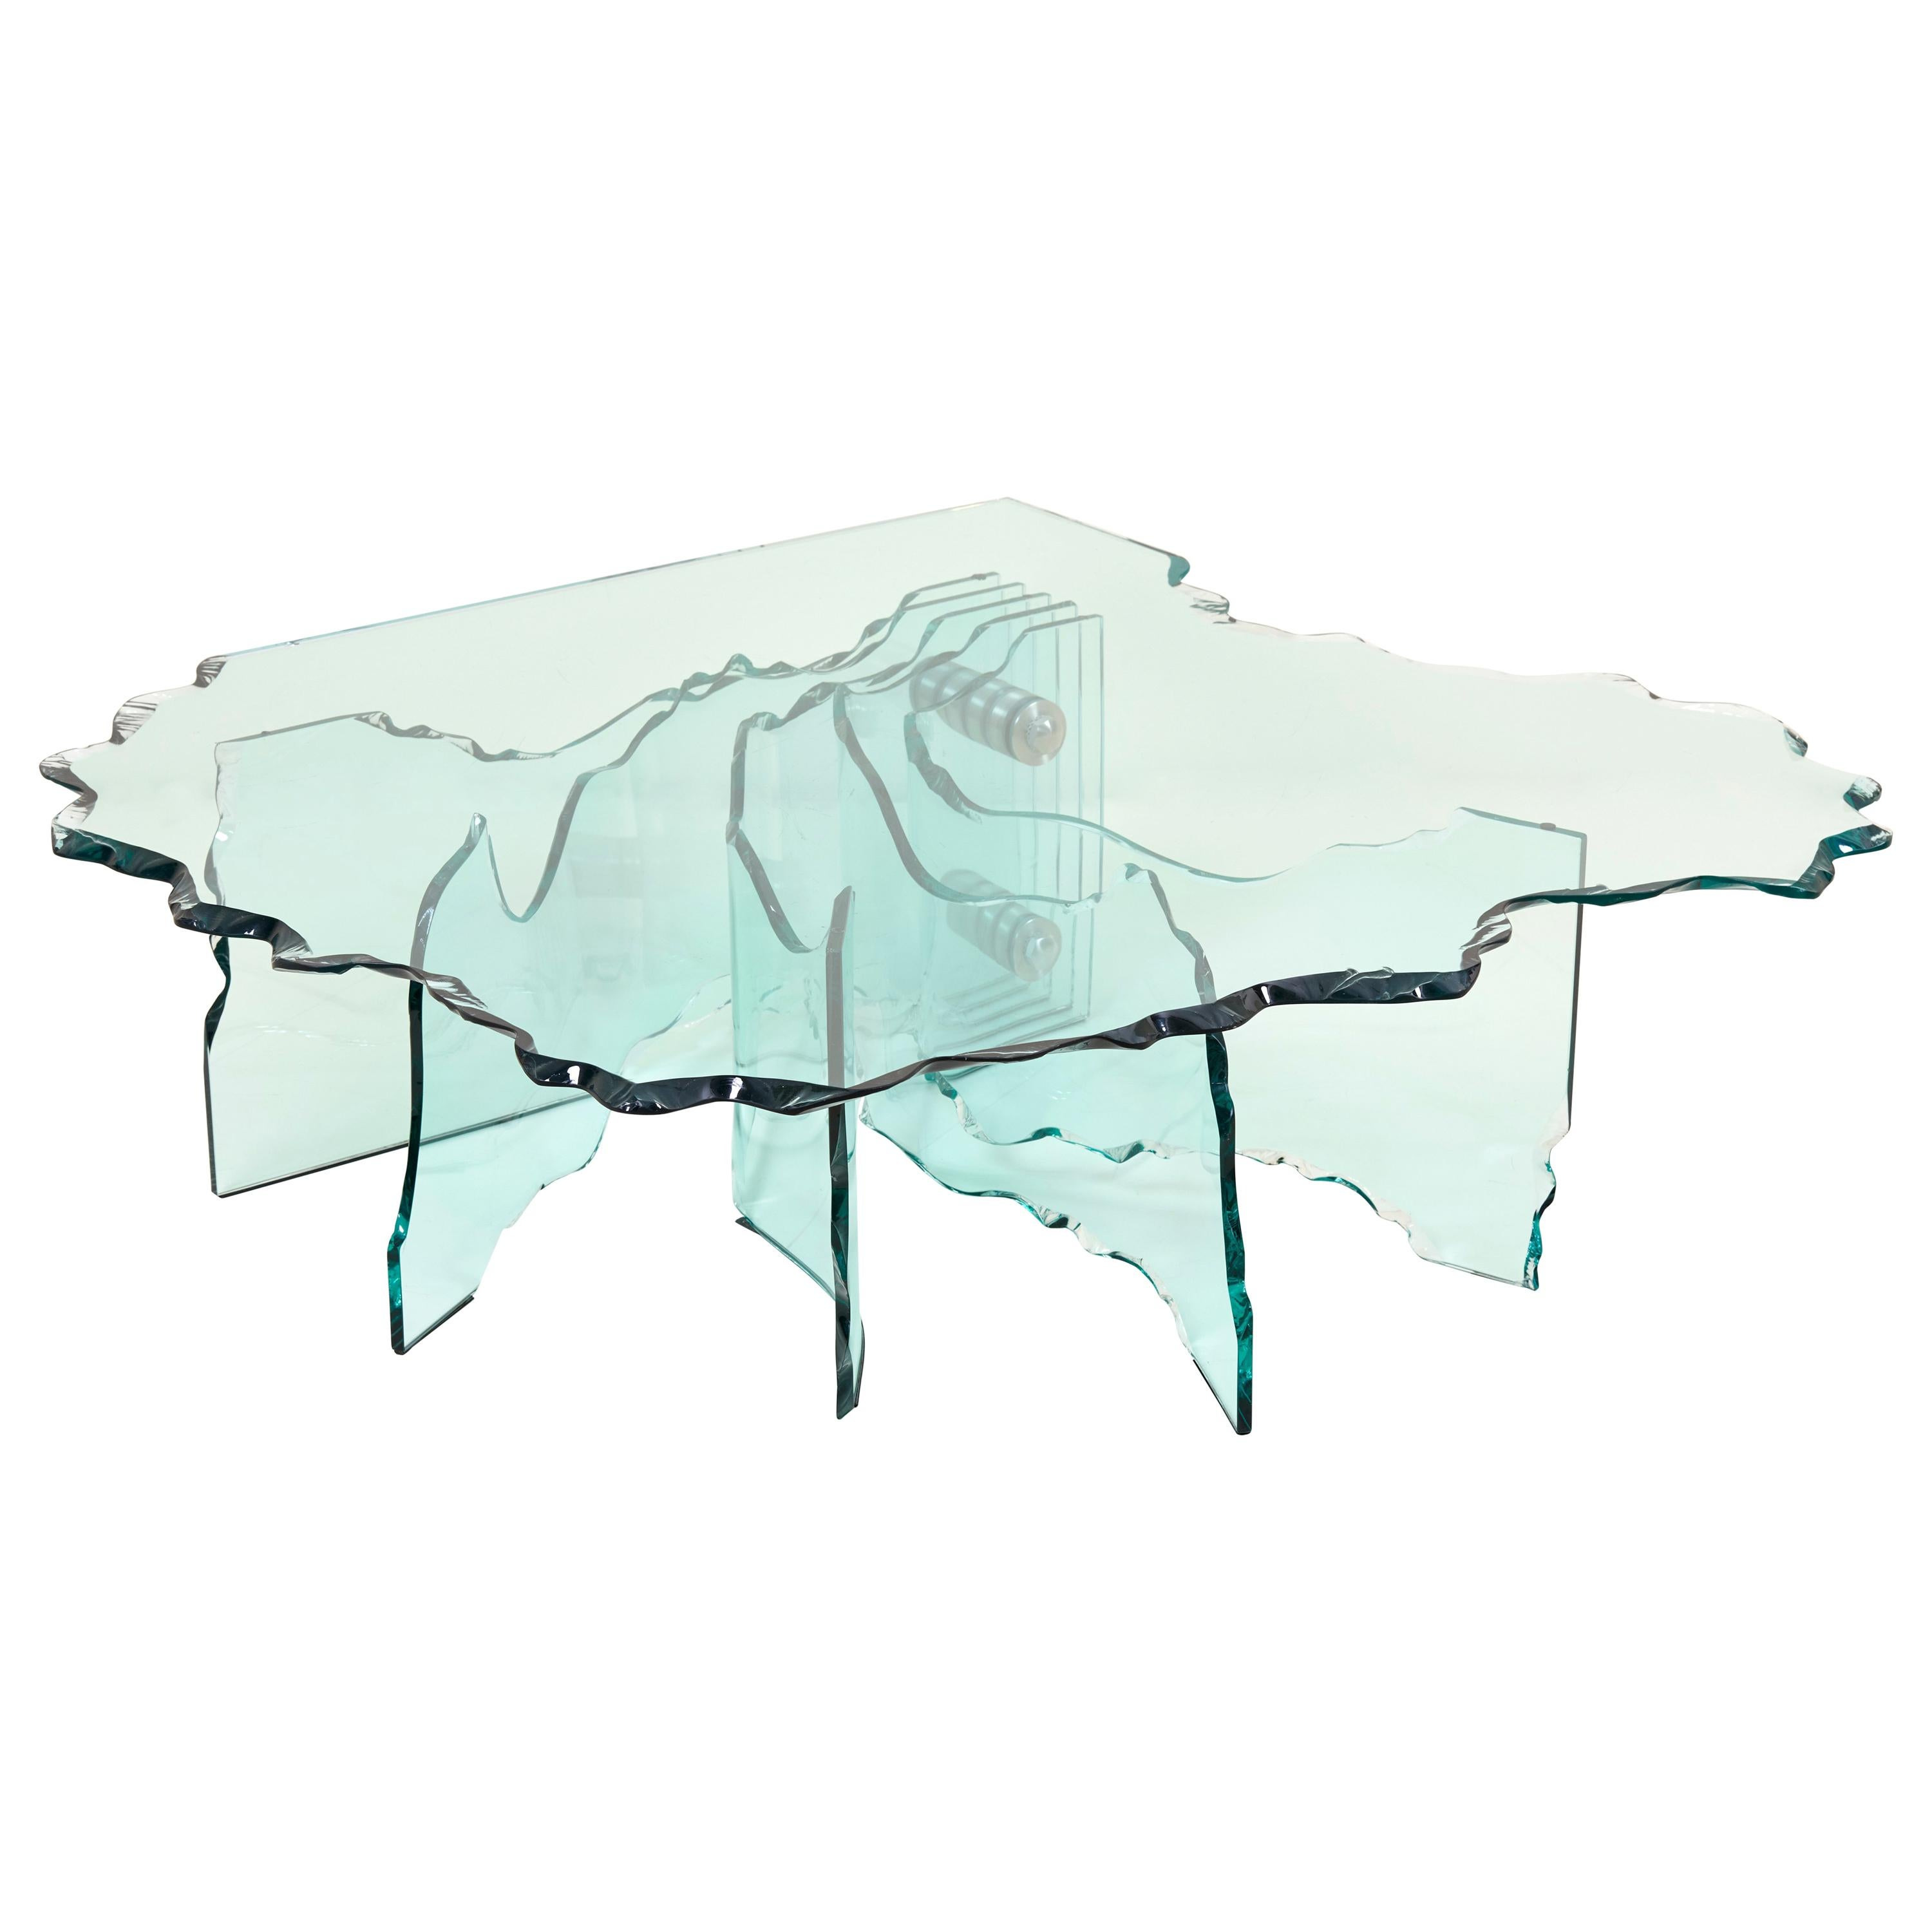 Huge Crystal Cut Glass Shell Coffee Table by Danny Lane for Fiam